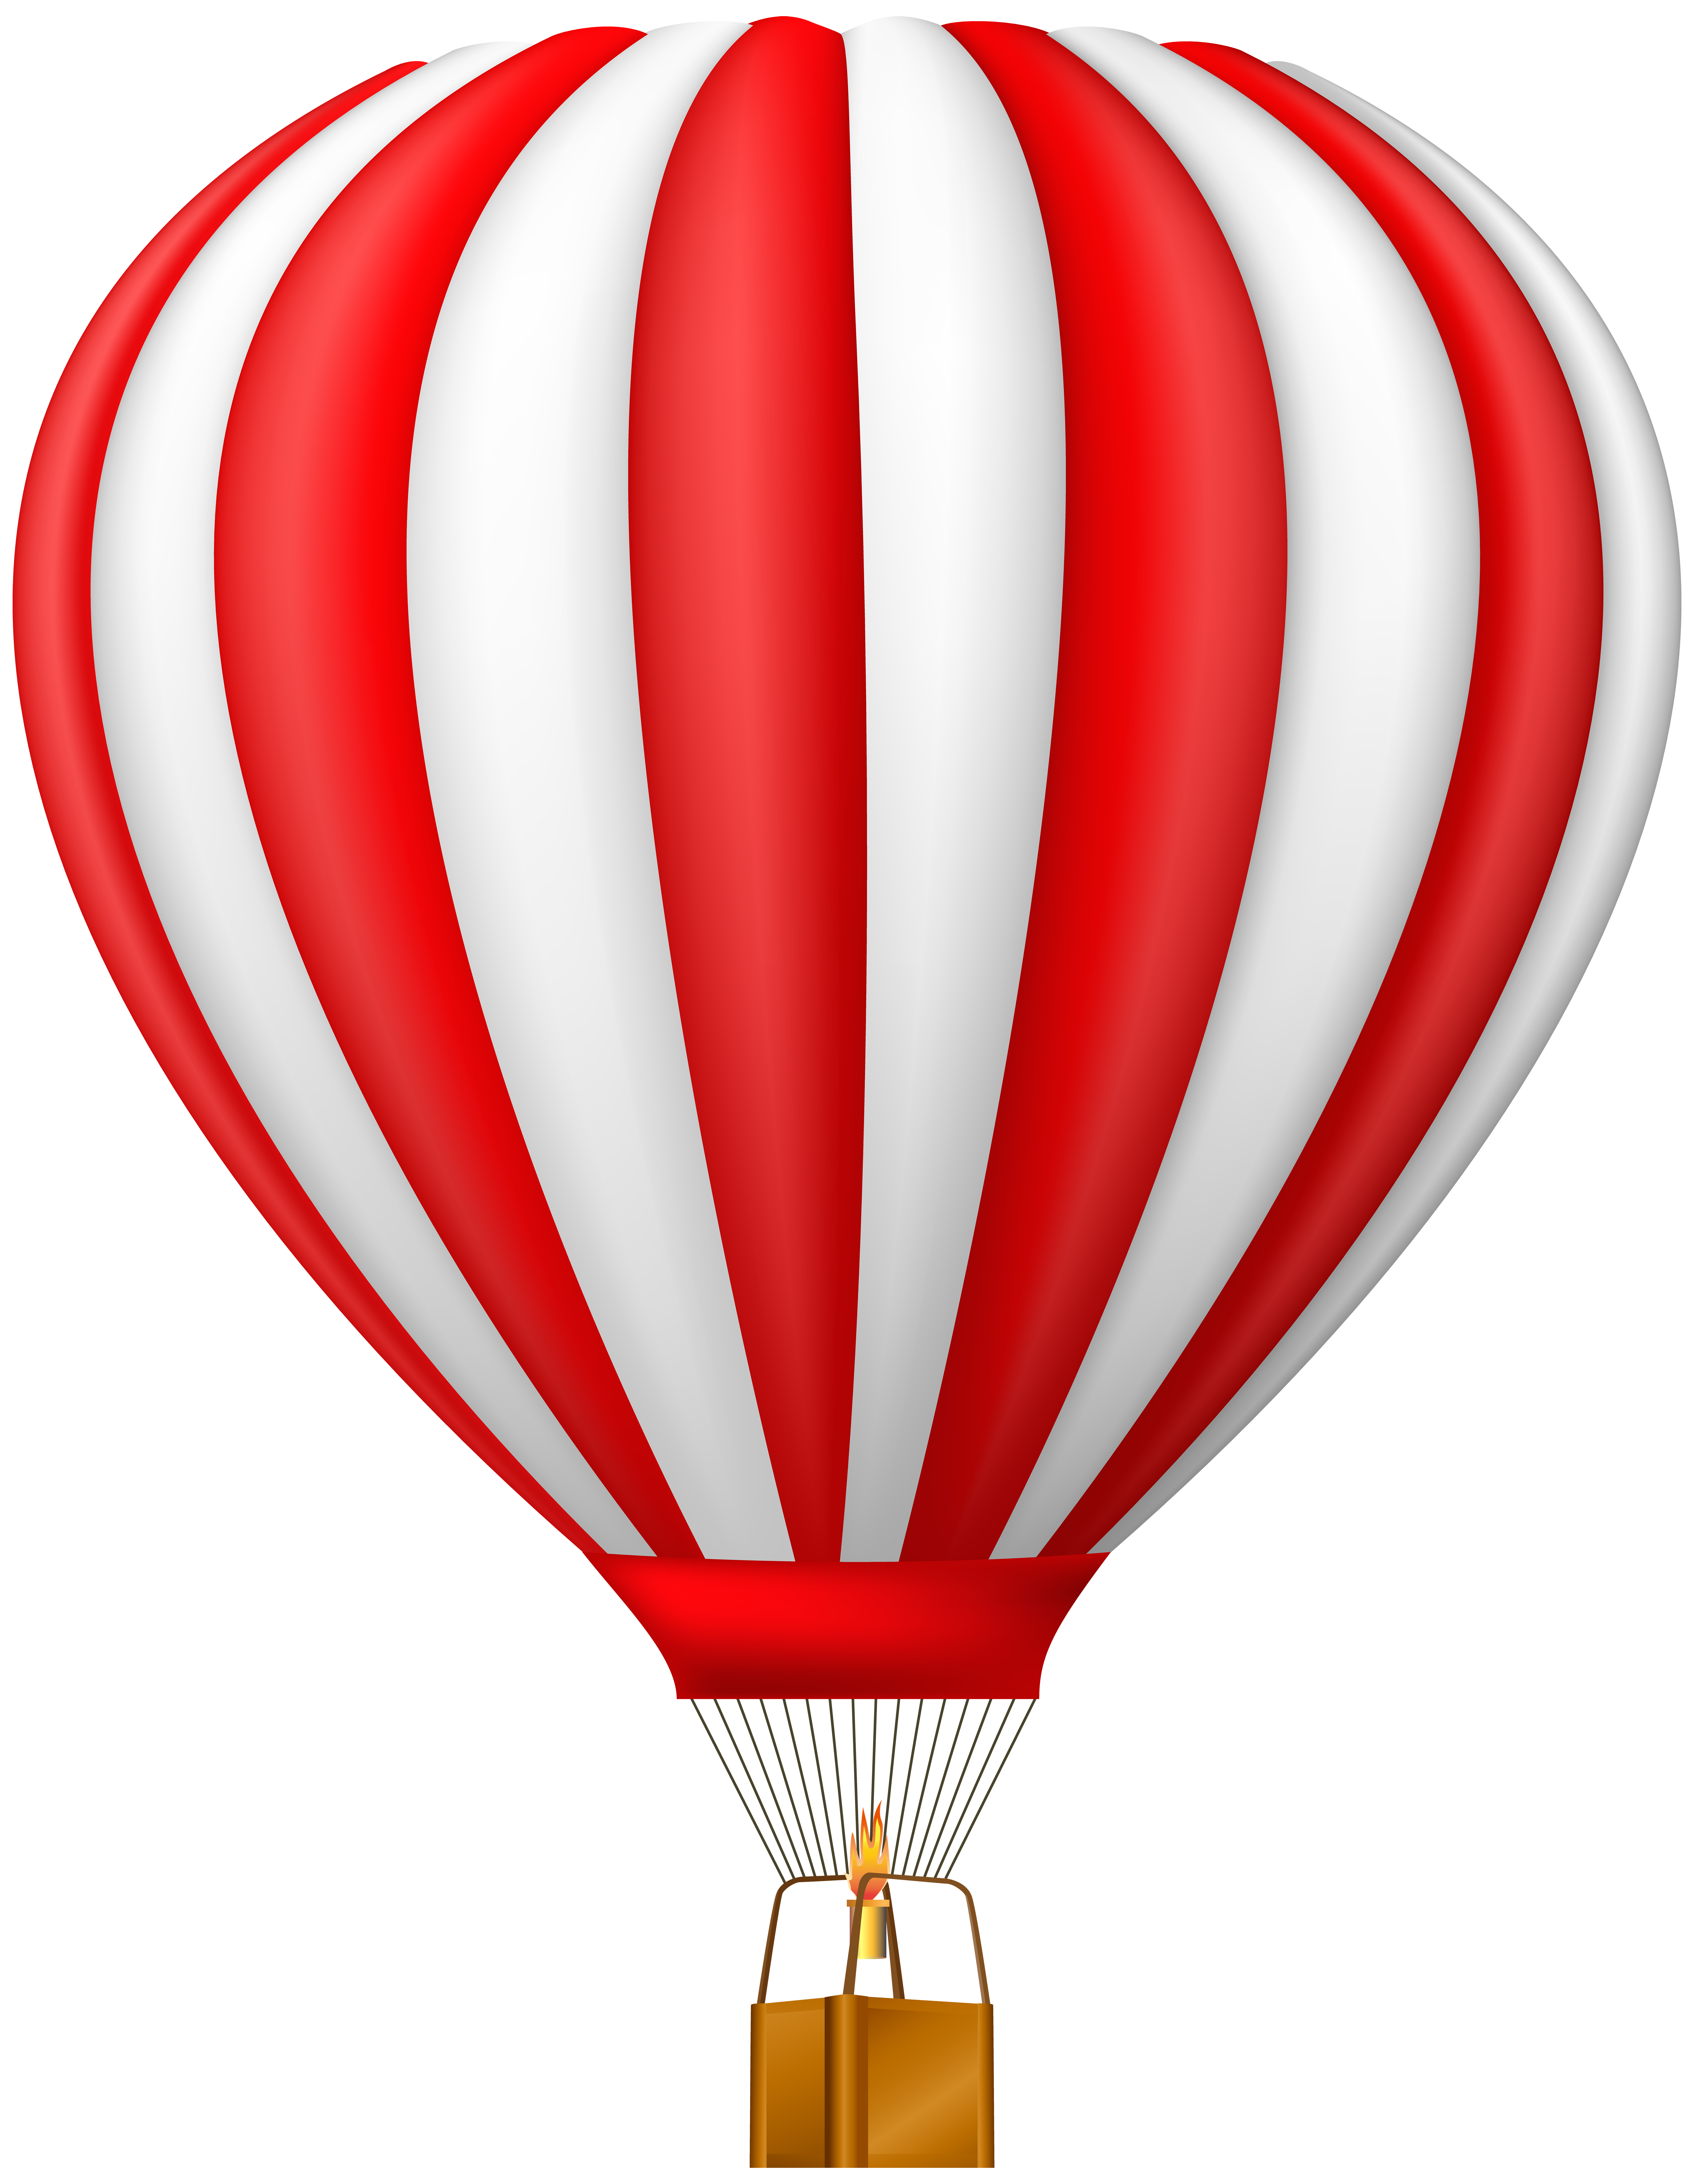 Red clipart hot air balloon. Transparent png clip art